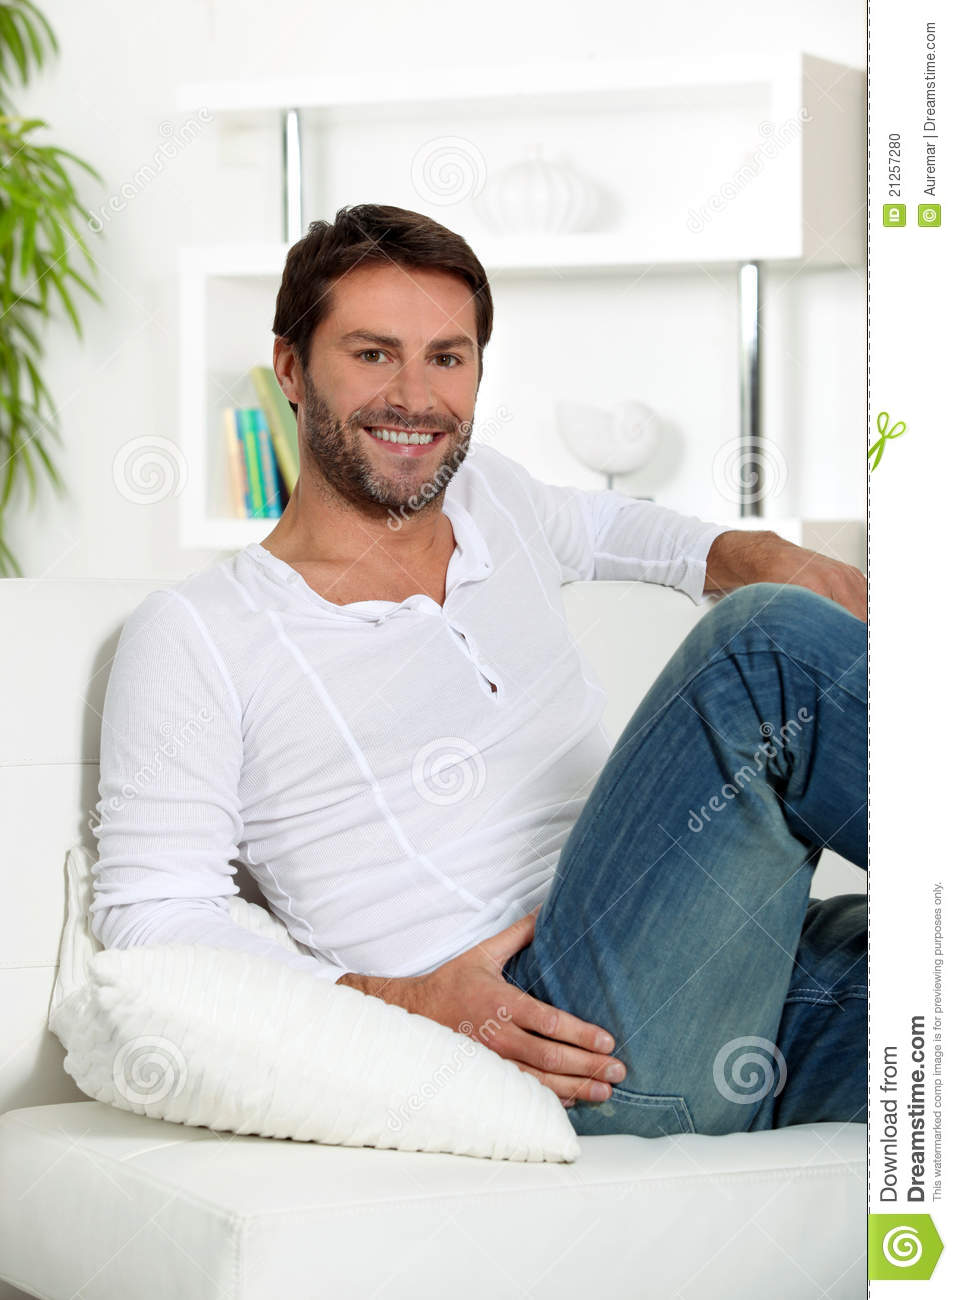 man relaxing at home stock photo image 21257280. Black Bedroom Furniture Sets. Home Design Ideas